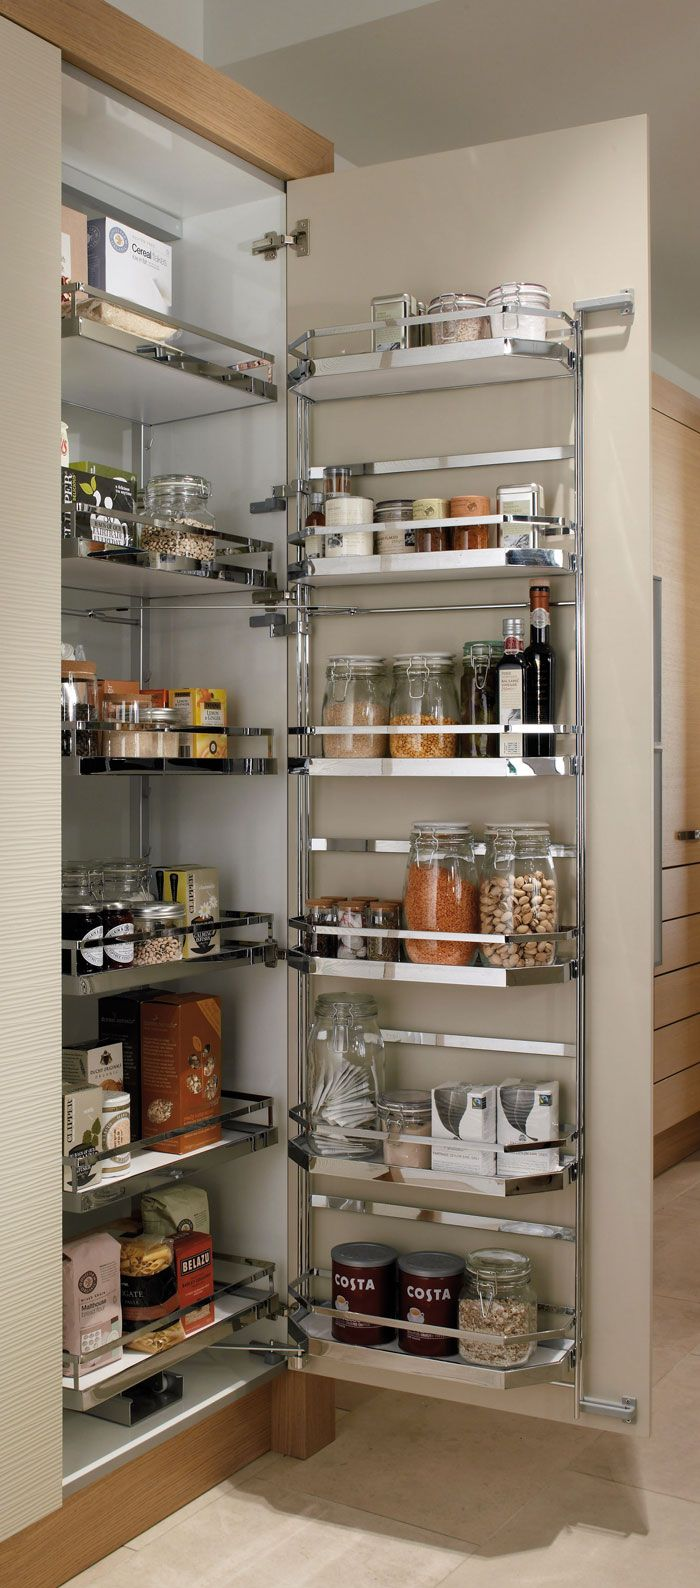 Top 10 The Best Kitchen Storage Ideas : Top 10 The Best Kitchen Storage  Ideas U2013 Huge Storage With Pull Out Tandem Larder